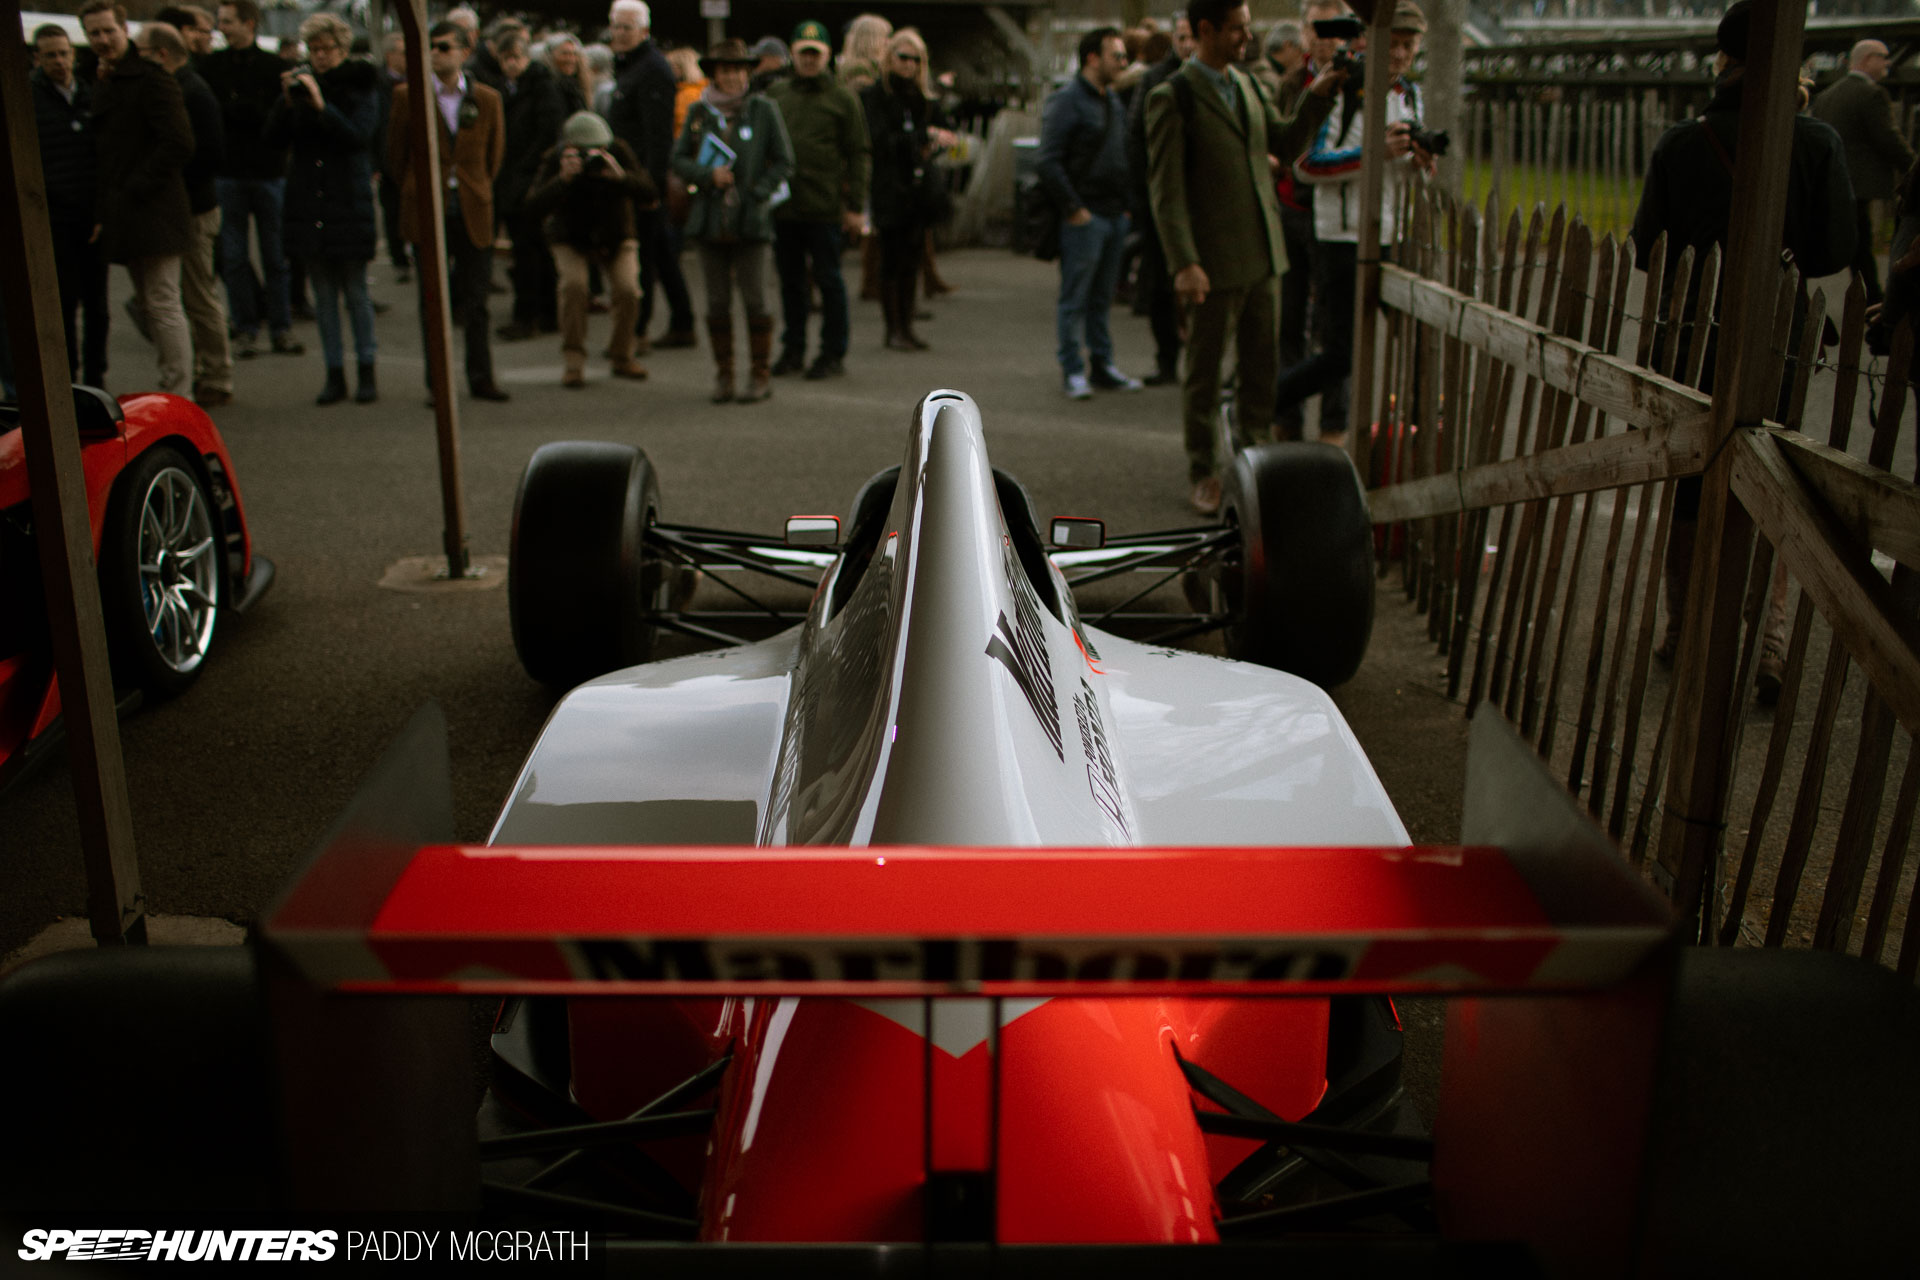 The Most Infamous McLaren OfAll